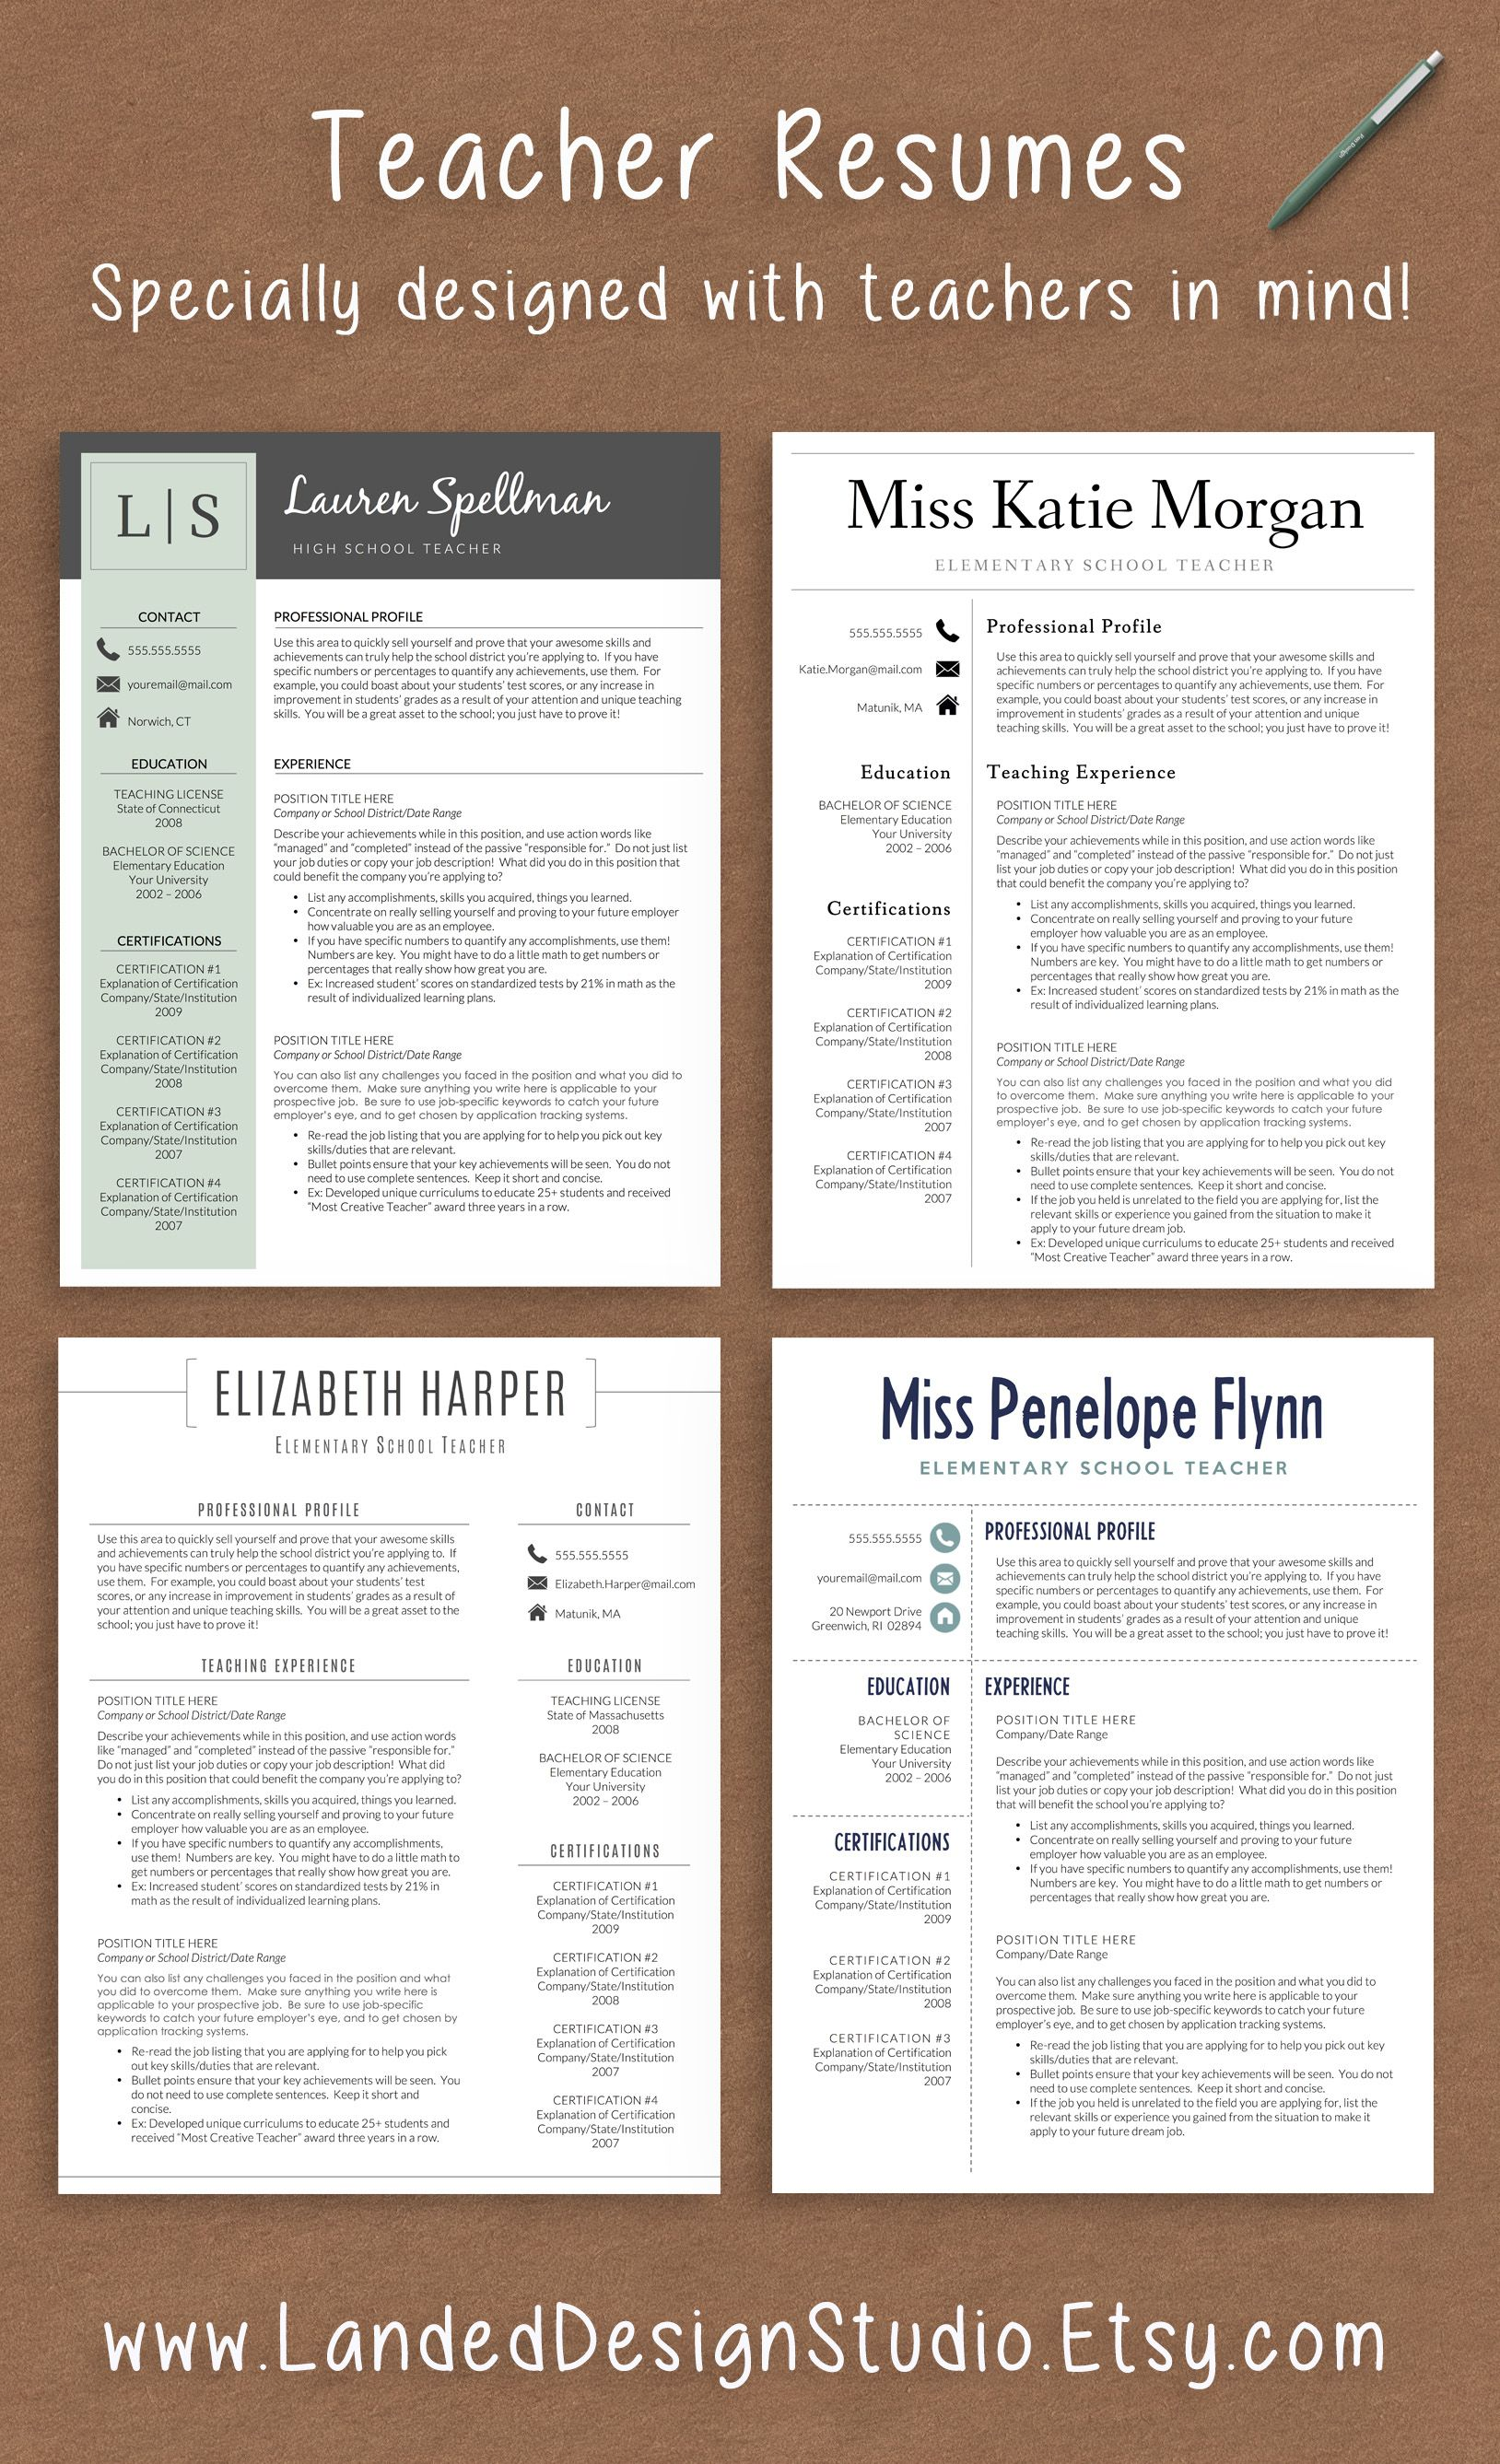 professionally designed resumes with teachers in mind completely transform your resume with a teacher resume. Resume Example. Resume CV Cover Letter